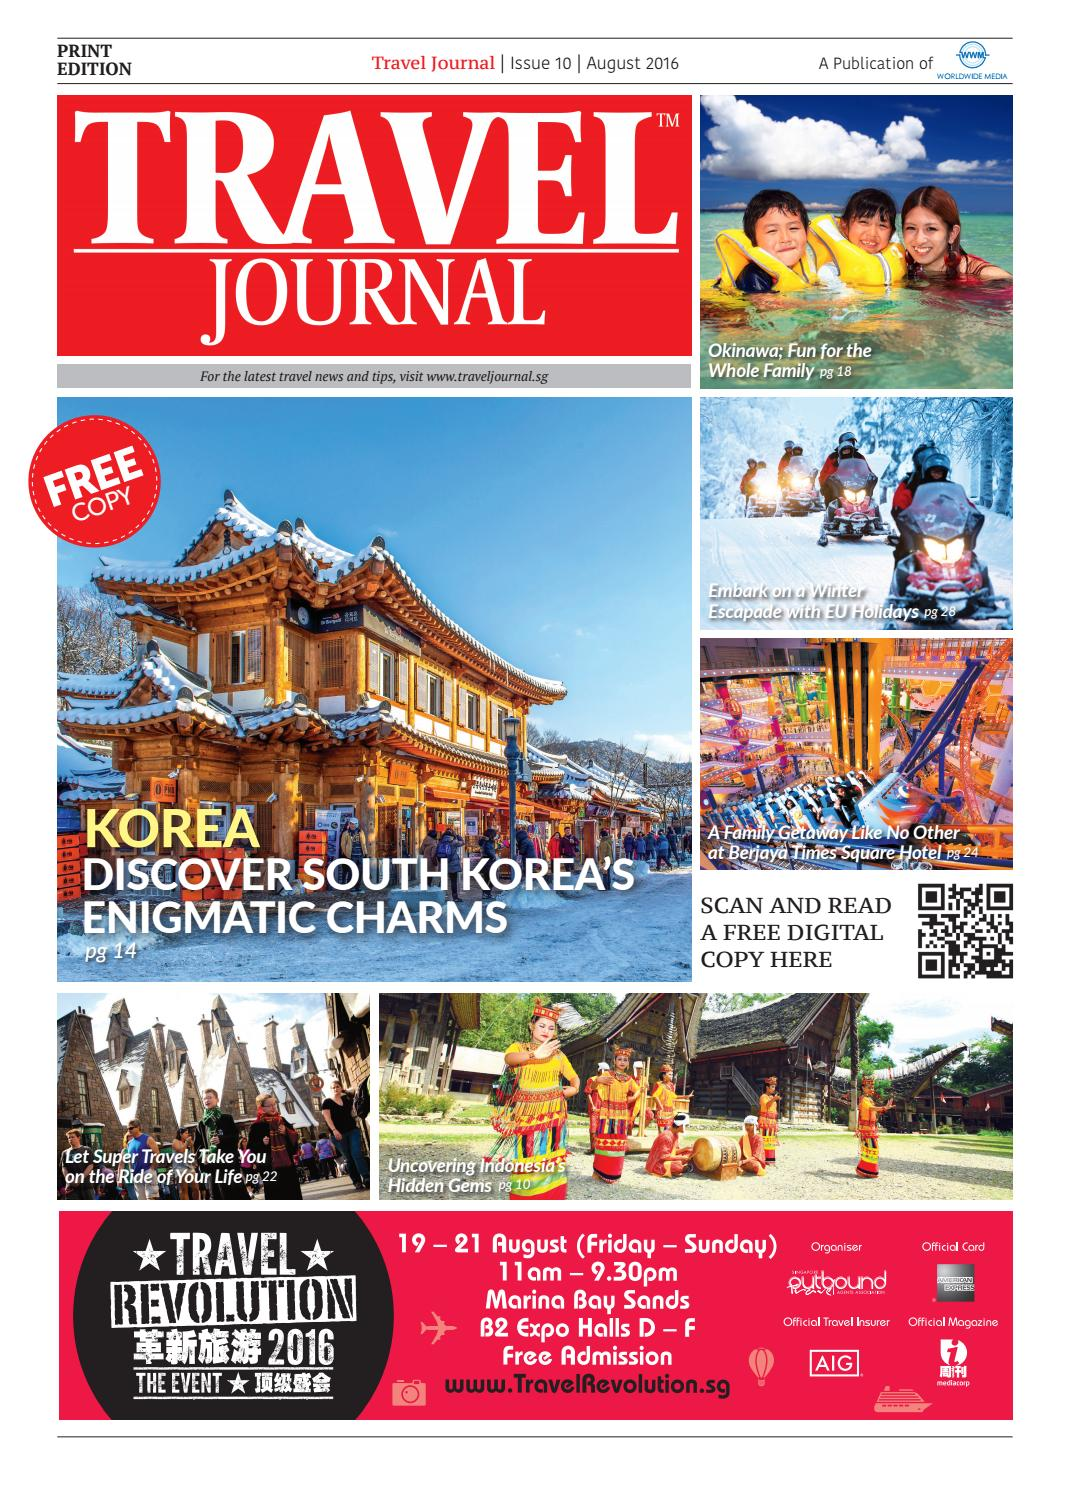 Travel Journal August 2016 By Wwmsg Issuu 8d 6n Memorable Korea Jeju Lotte World Tower